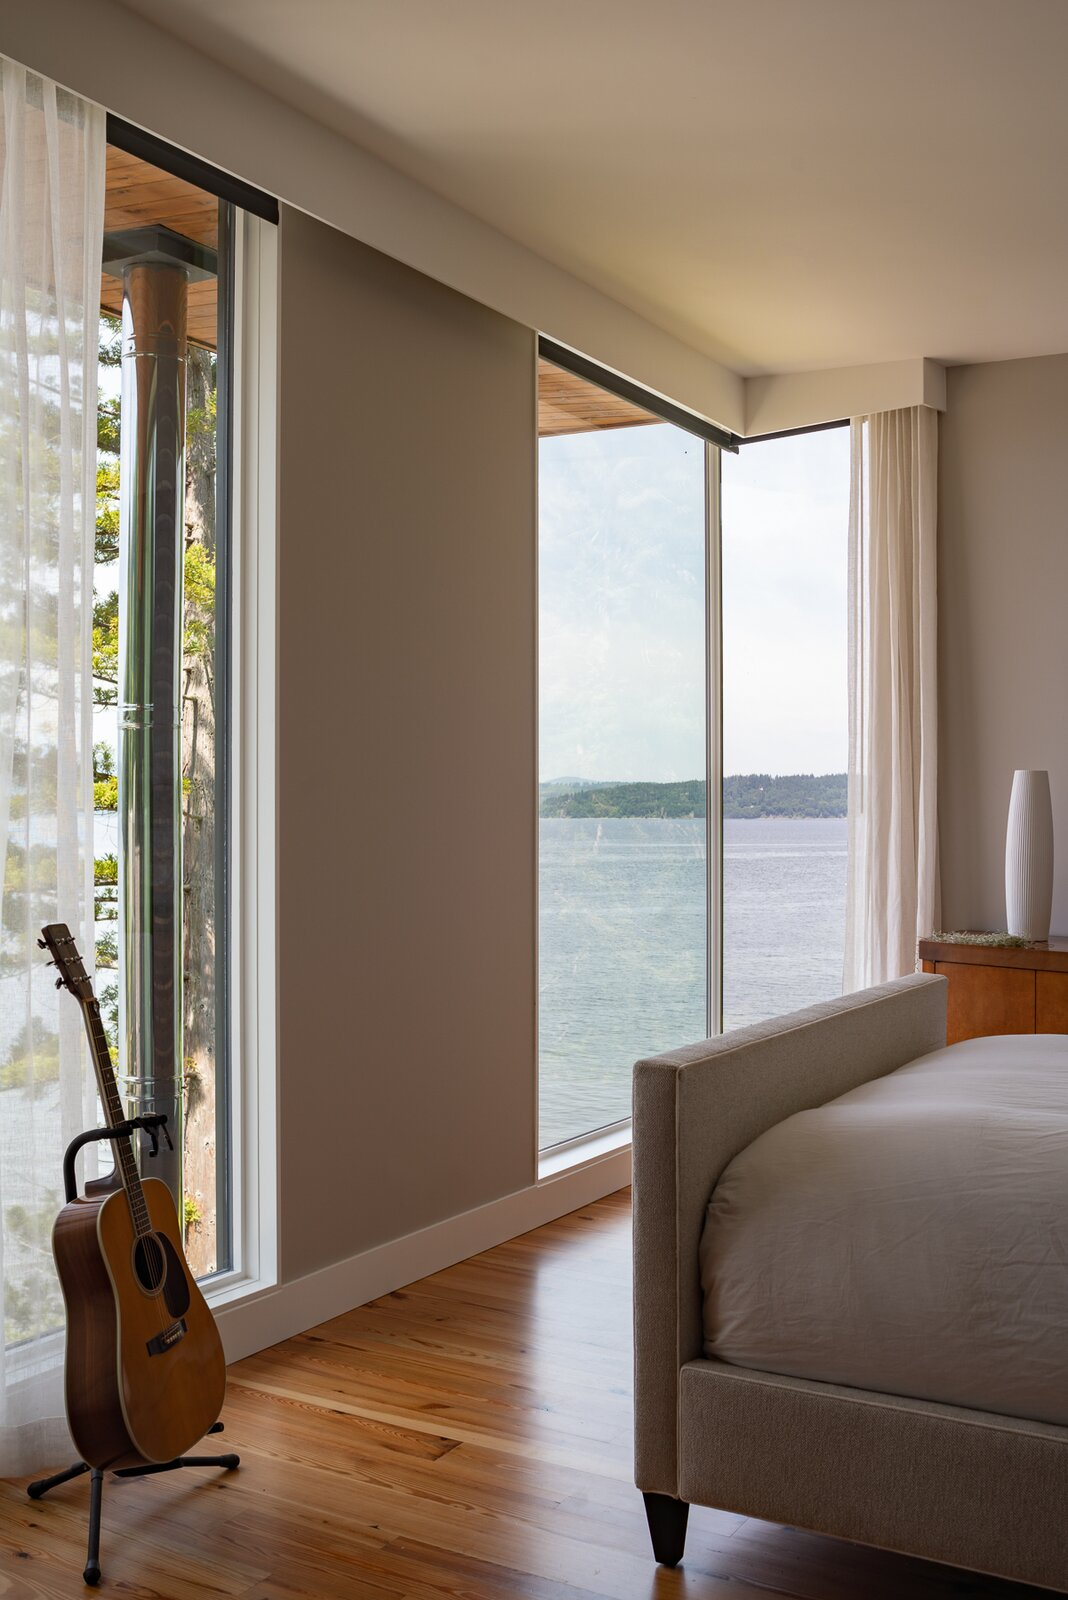 Bedroom, Medium Hardwood Floor, and Bed  Photo 10 of 13 in A Waterfront Home in Washington Grows Two Hovering Wings